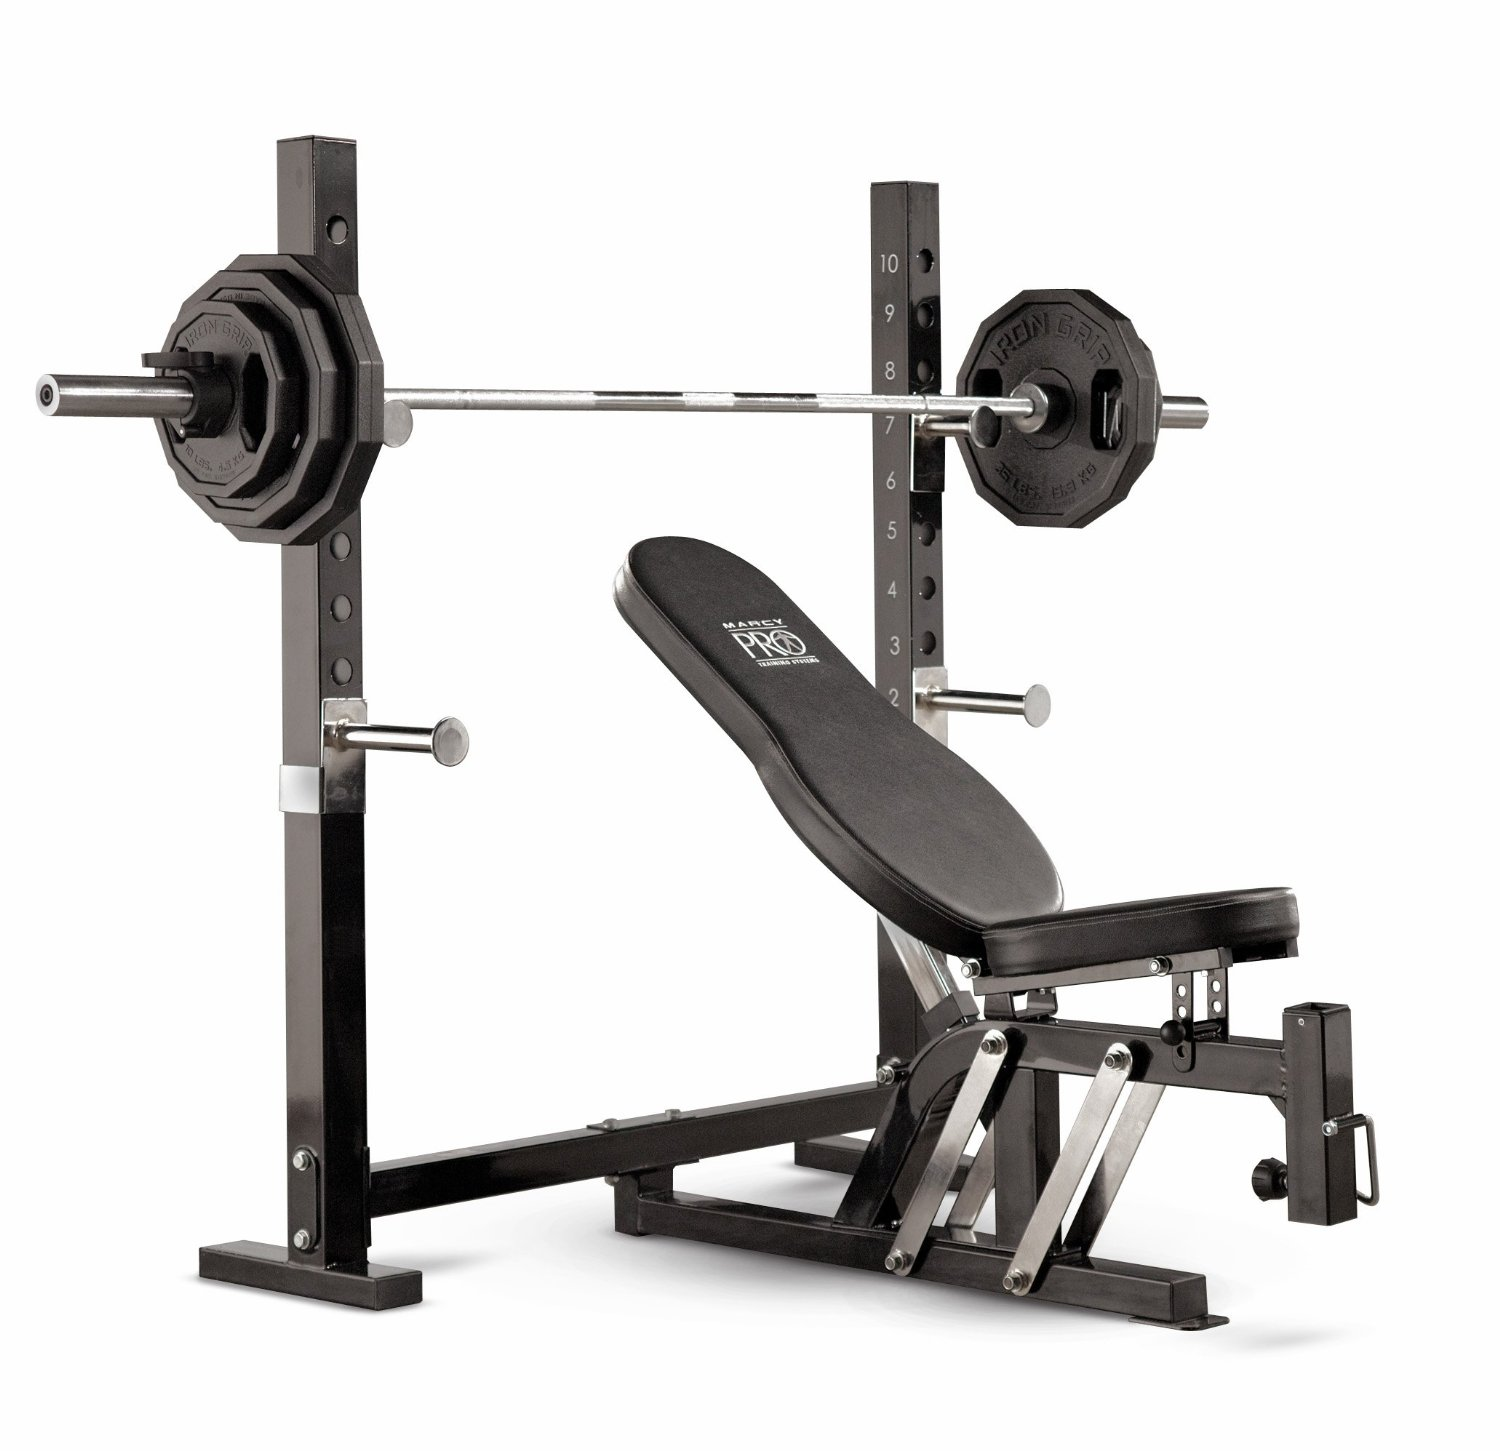 Marcy pro olympic bench review Weight bench and weights